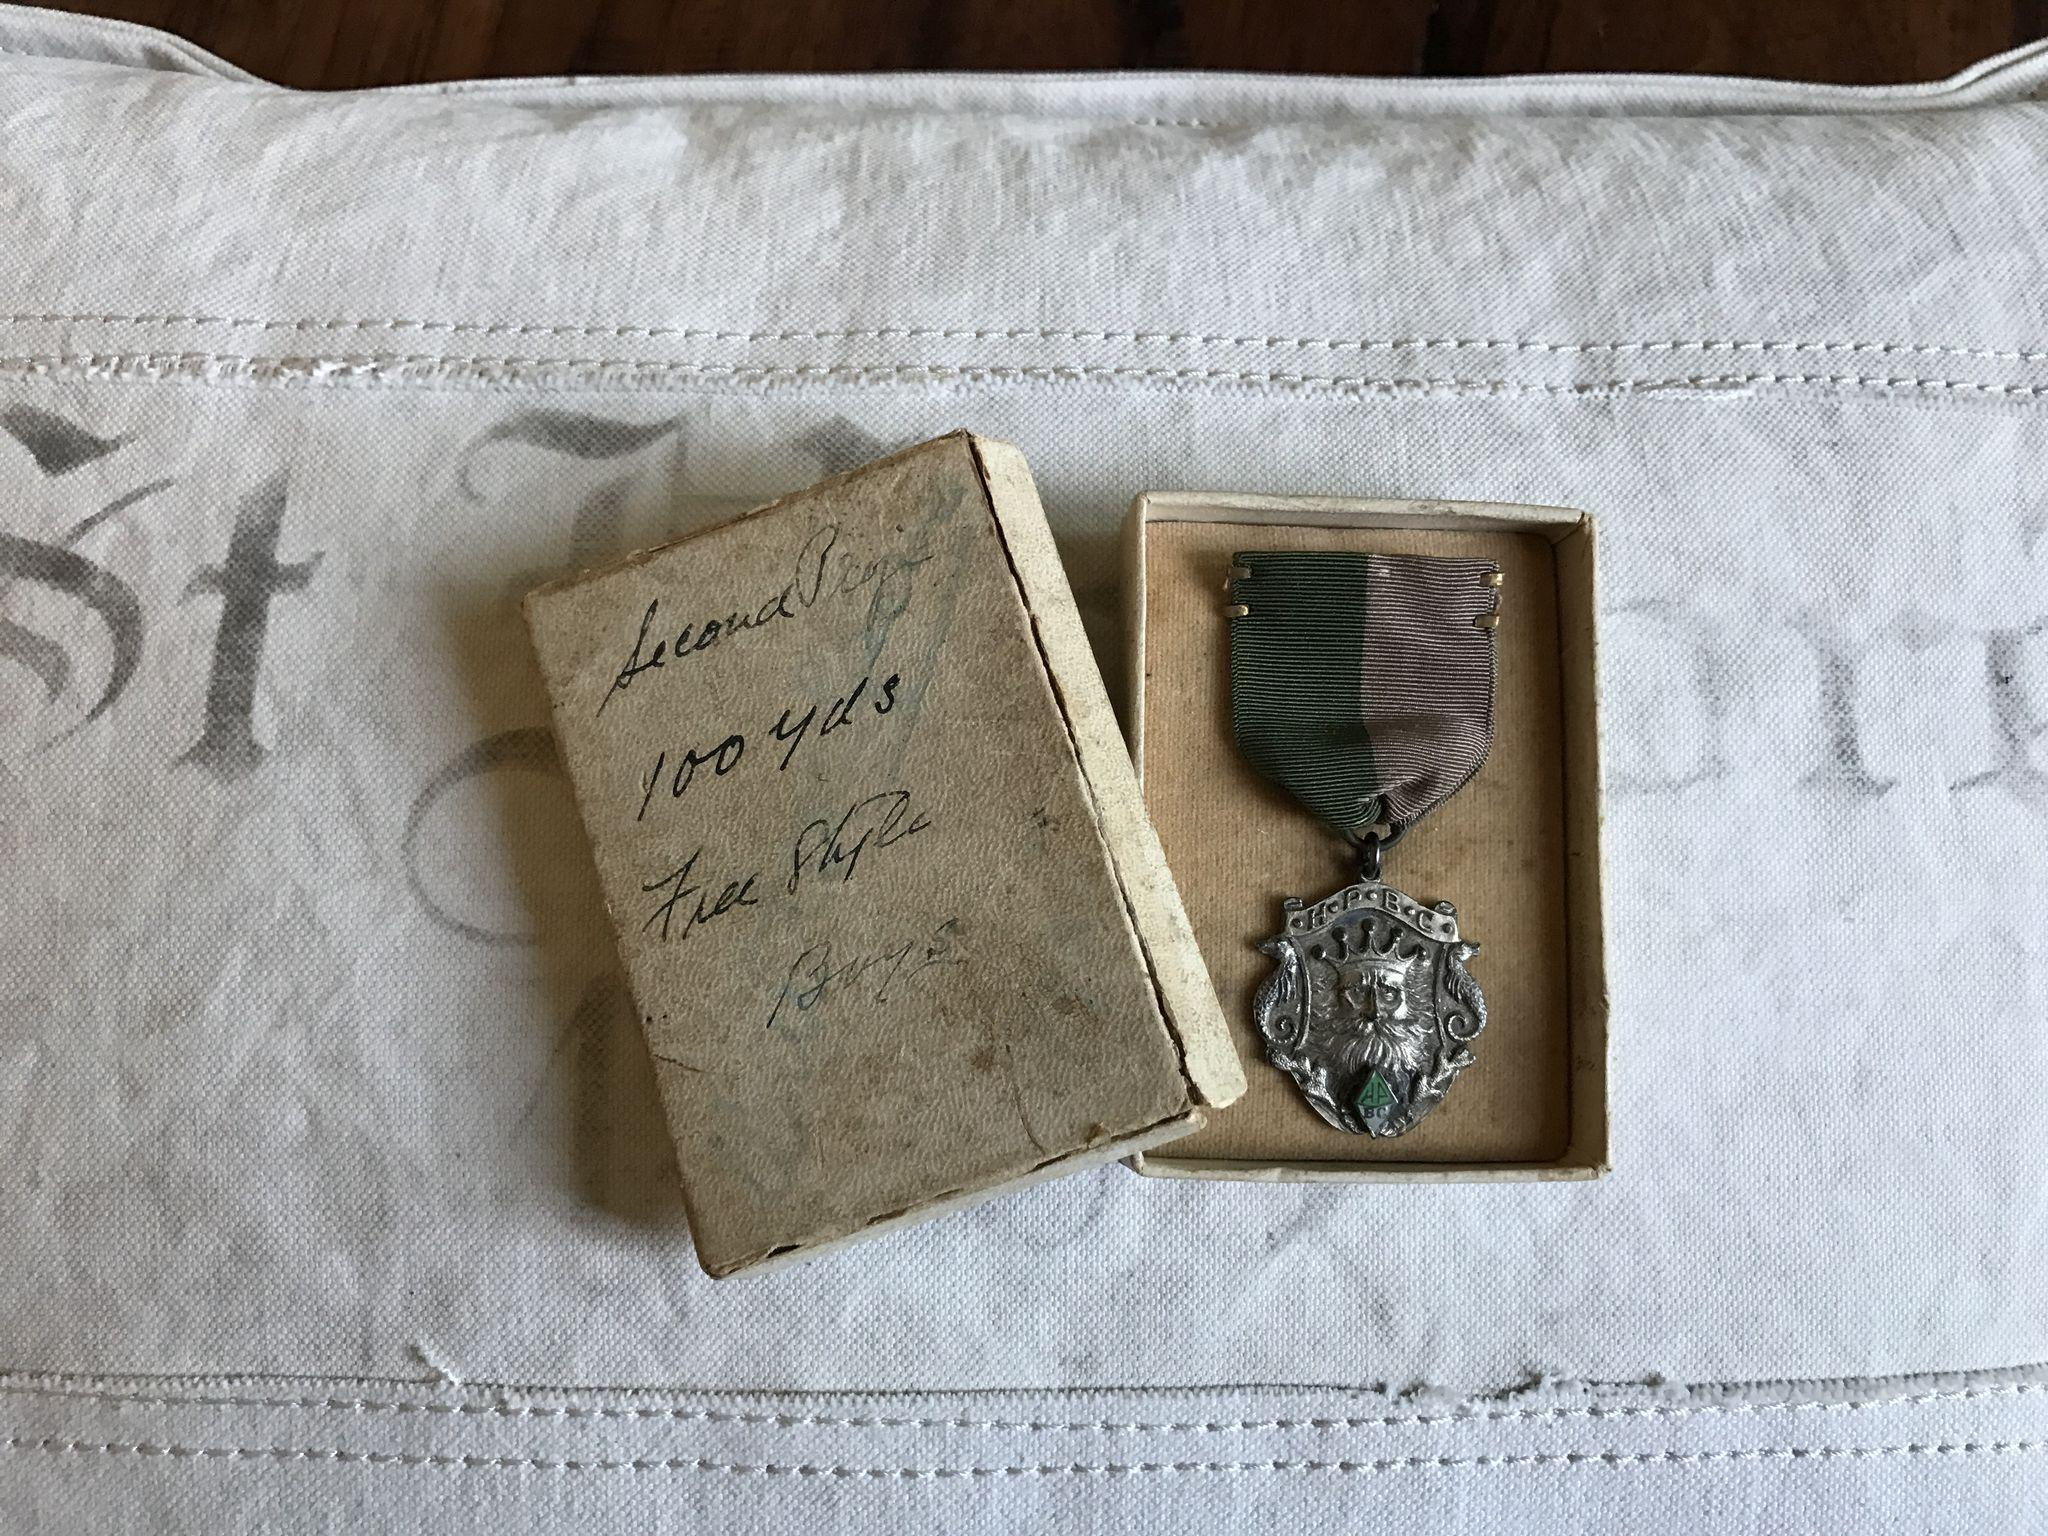 Great 1935 Sterling Silver Neptune 2nd Place Swimming Medal Award